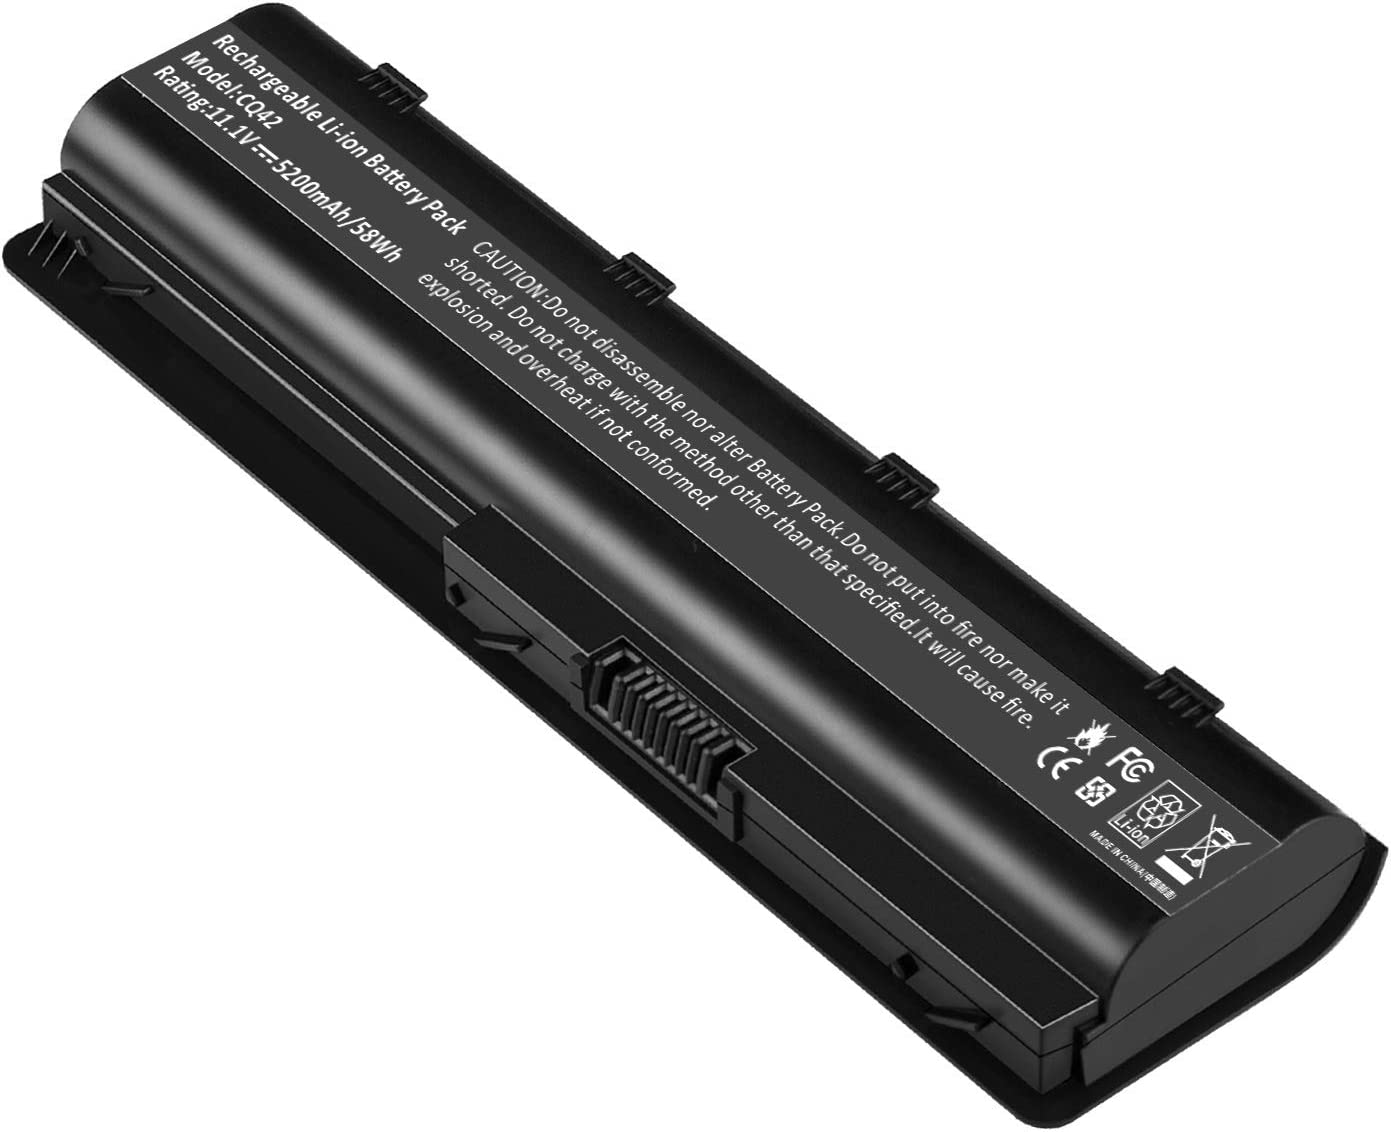 Replacement Battery for HP Spare 593553-001, HP Compaq Presario CQ32 CQ42 CQ43, HP Pavilion dm4 g4 g6 g7 DV3-4000 DV5-2000 DV6-3000 DV7-6000, COMPAQ 435 436, fits HP MU06 (General Battery)